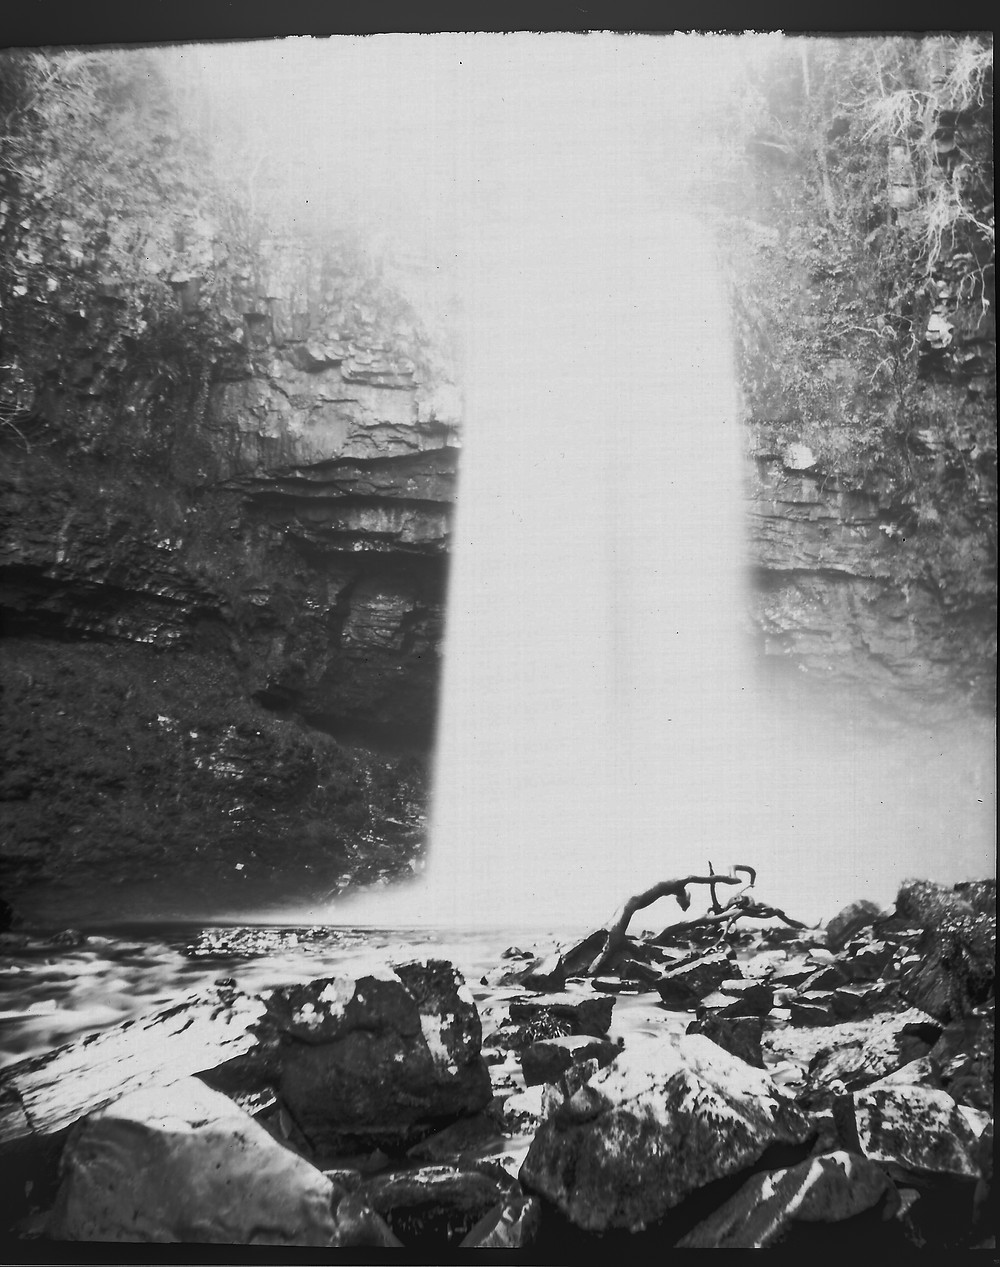 welsh waterfalls_10x8_paperNeg_PSInvert300dpi-1